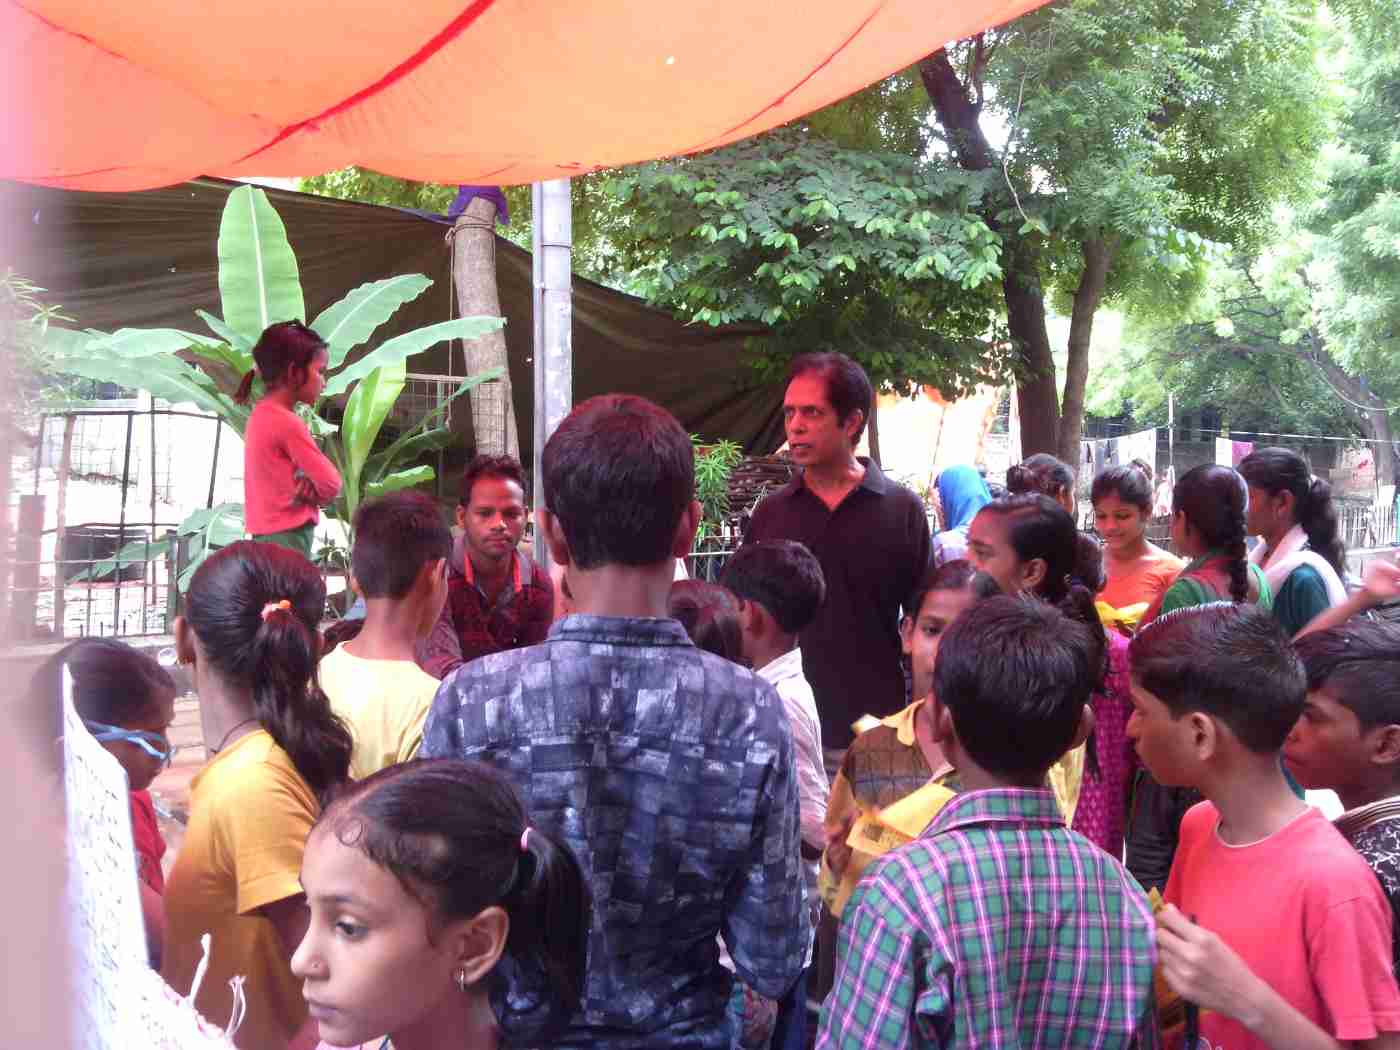 RMN Foundation School teacher Rakesh Raman explaining the benefits of modern alternative education to people in a street of Delhi.